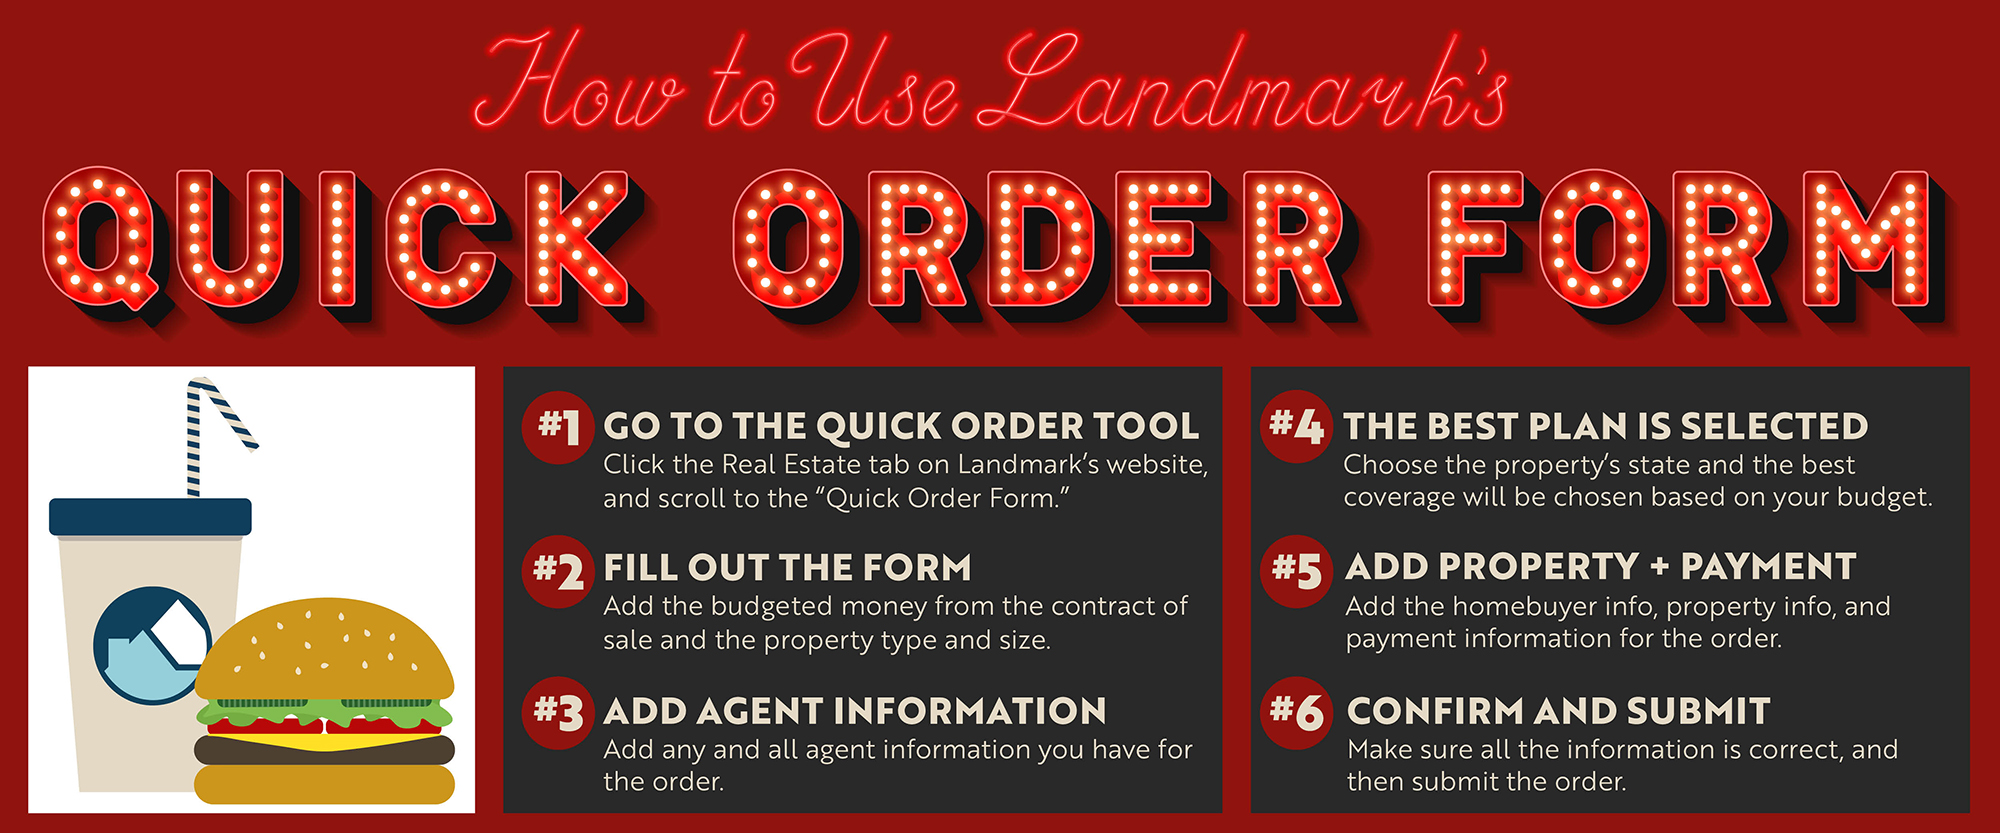 Diner version of how to use the quick order tool on Landmark's website.